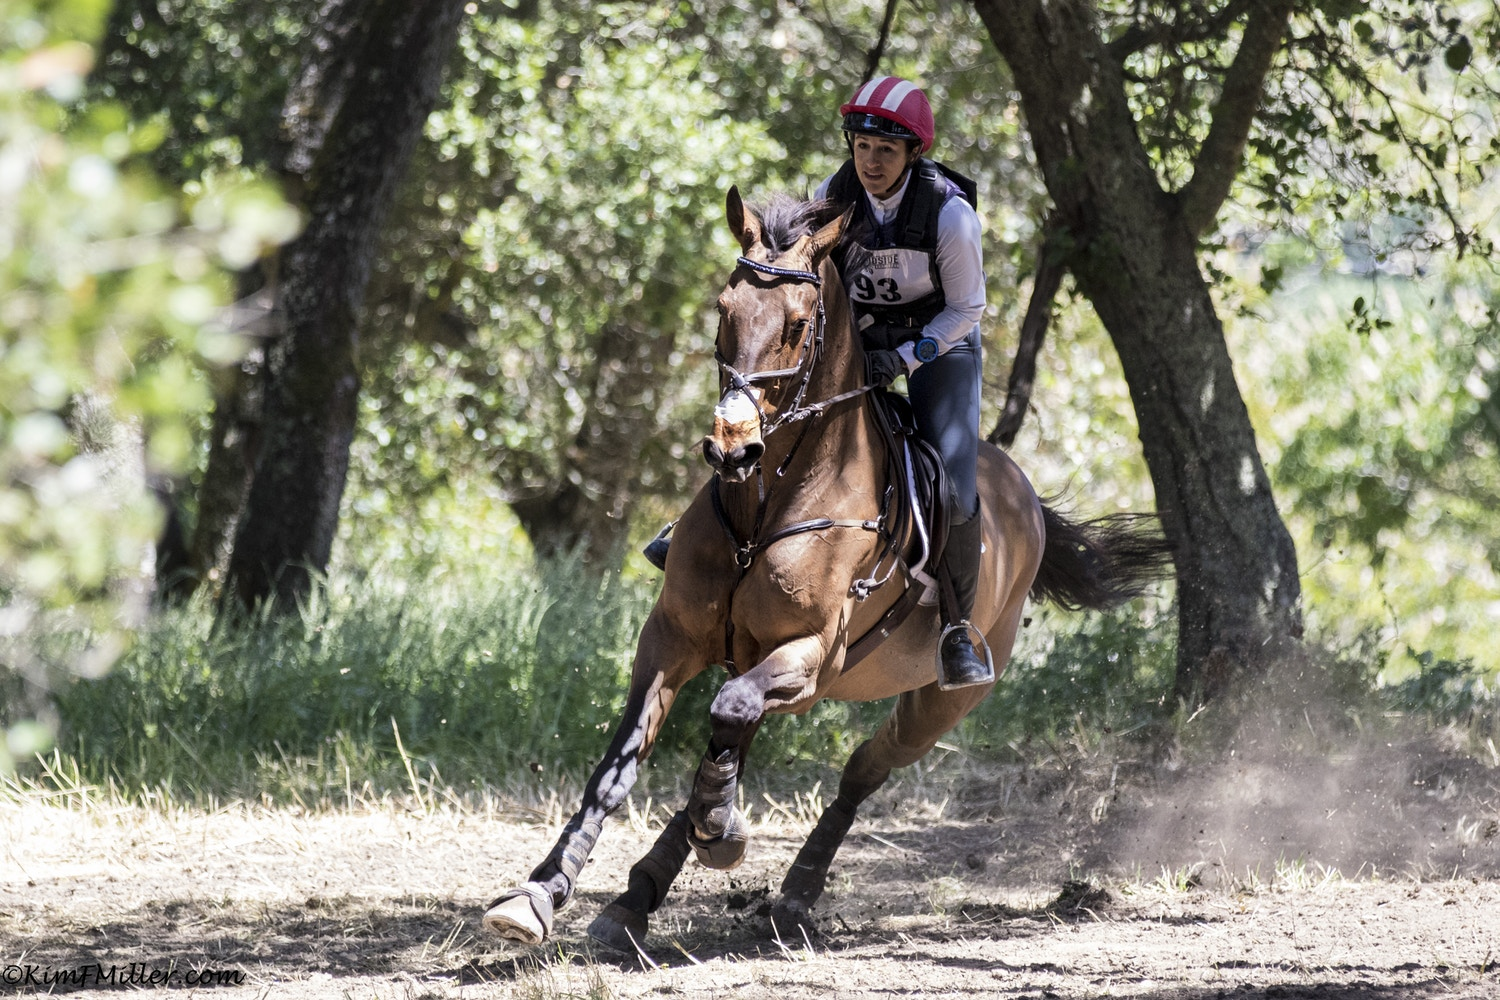 Lauren Billys & Purdy: On Track for Tokyo